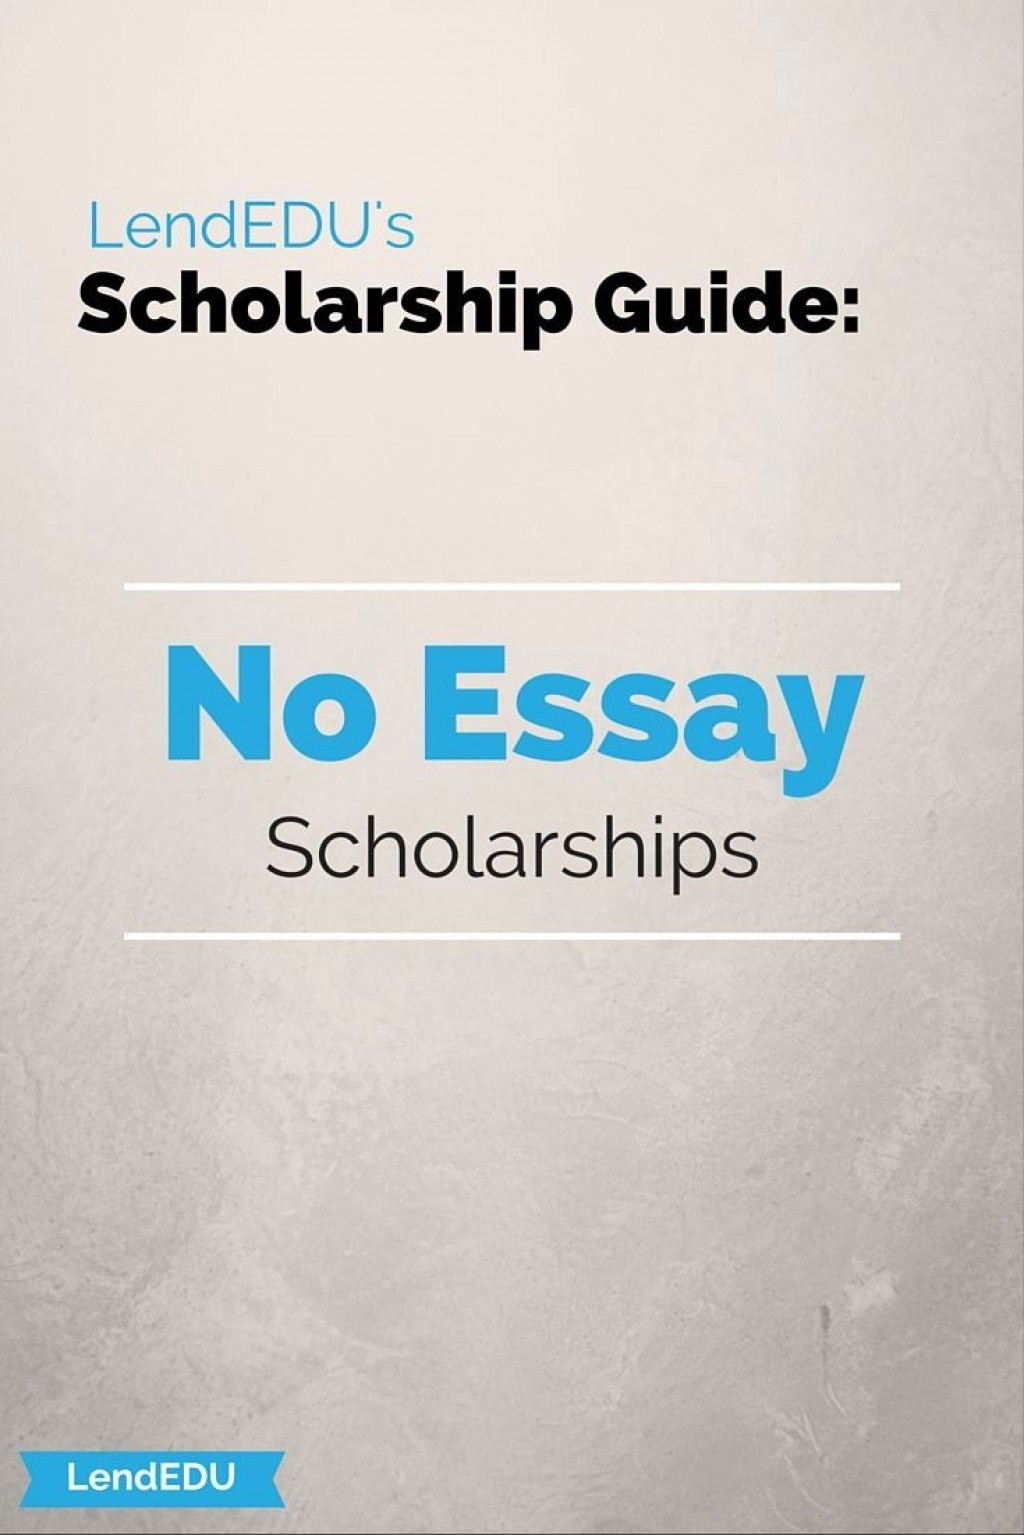 018 No Essay Scholarships Example Exceptional For Undergraduates College Students 2019 Large